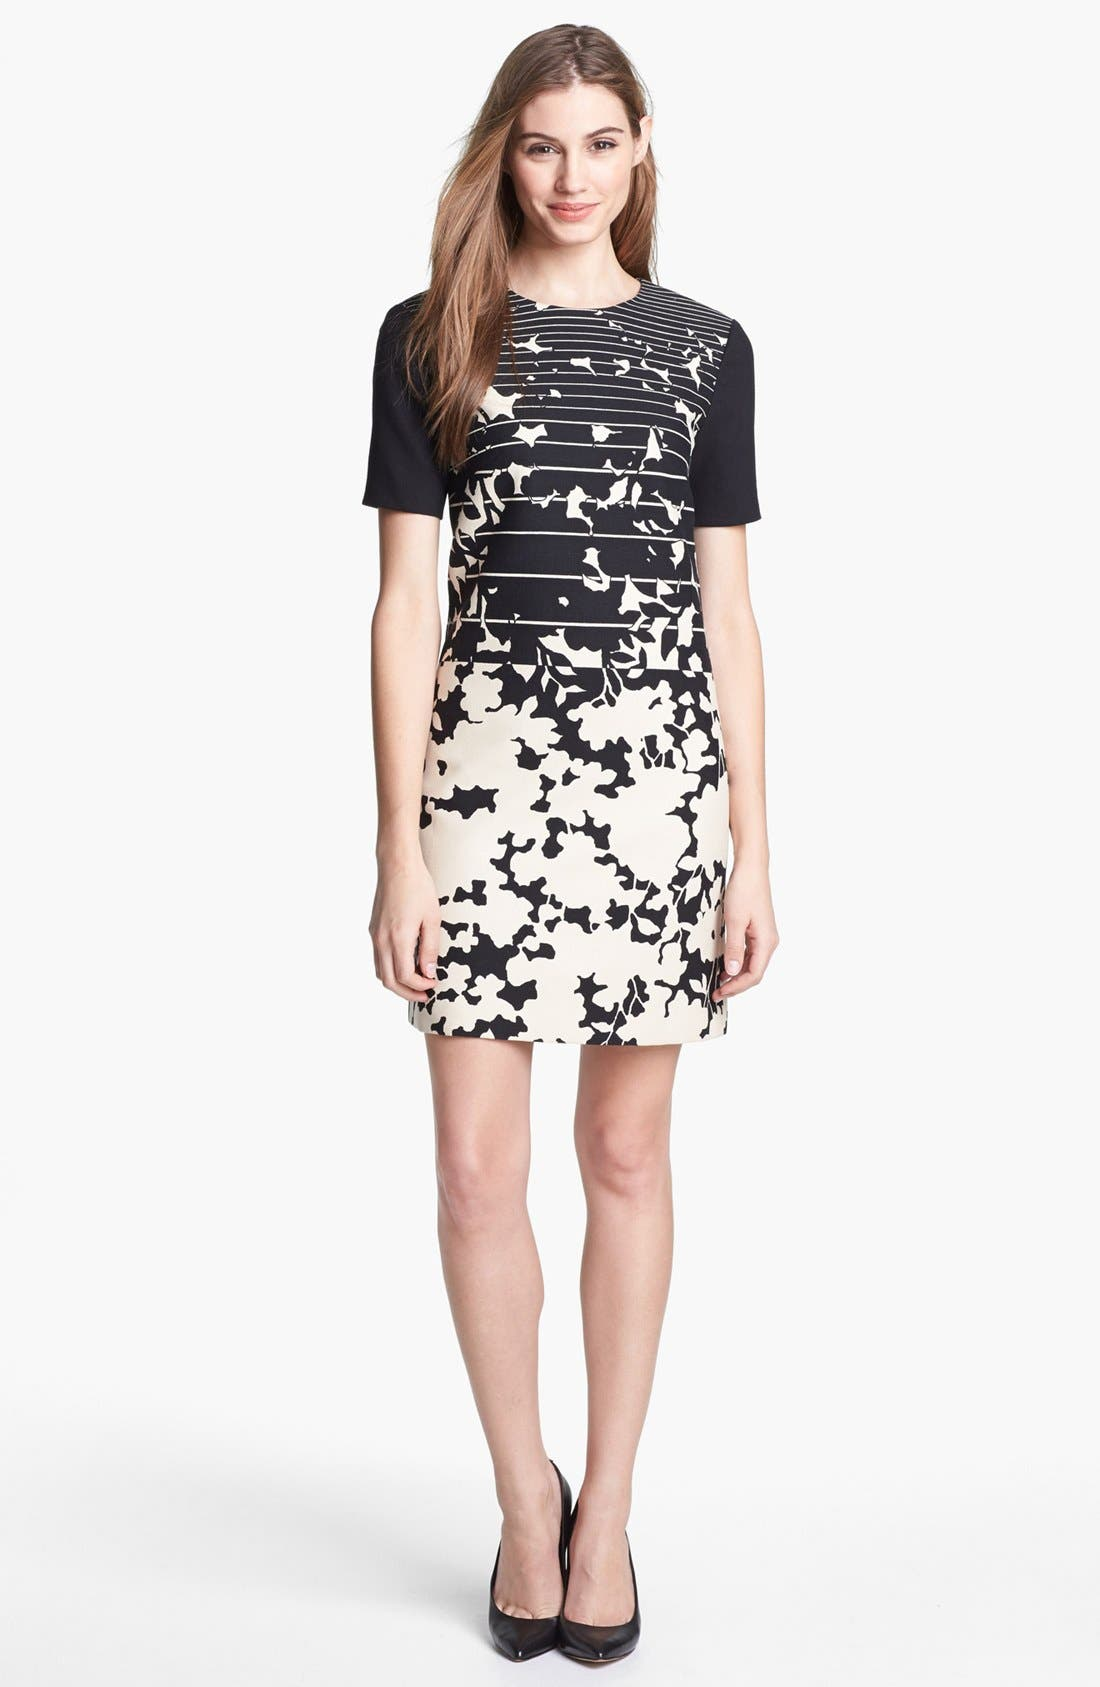 Main Image - 4.collective Print Short Sleeve Shift Dress